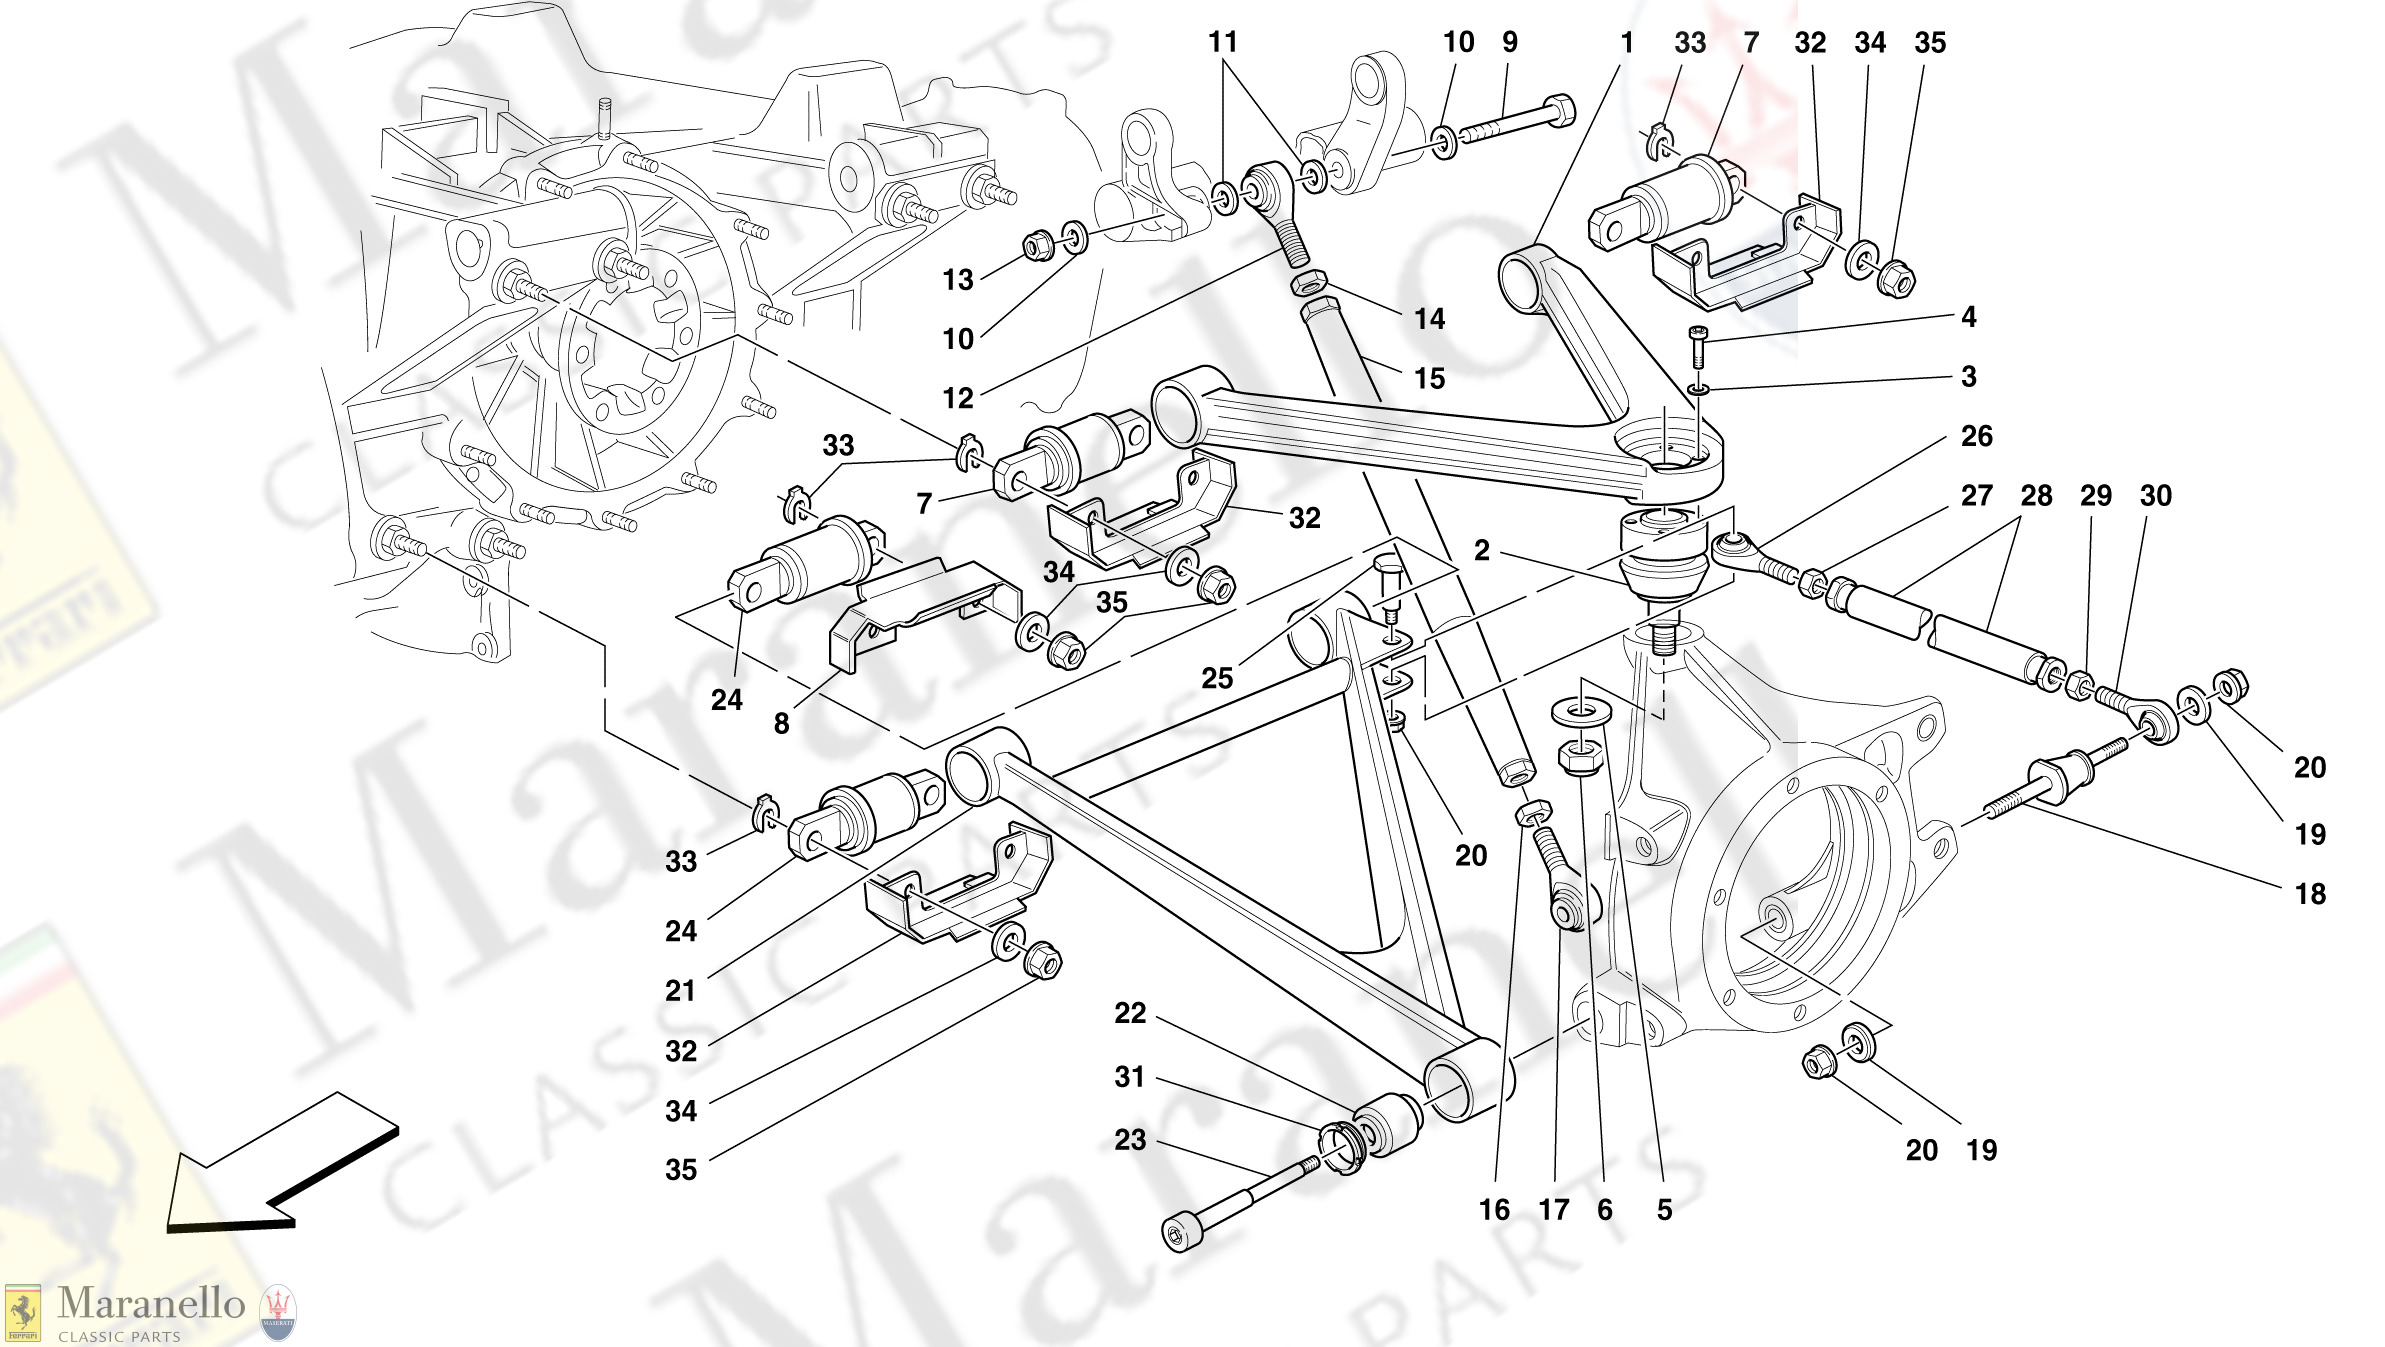 045 - Rear Suspension - Wishbones